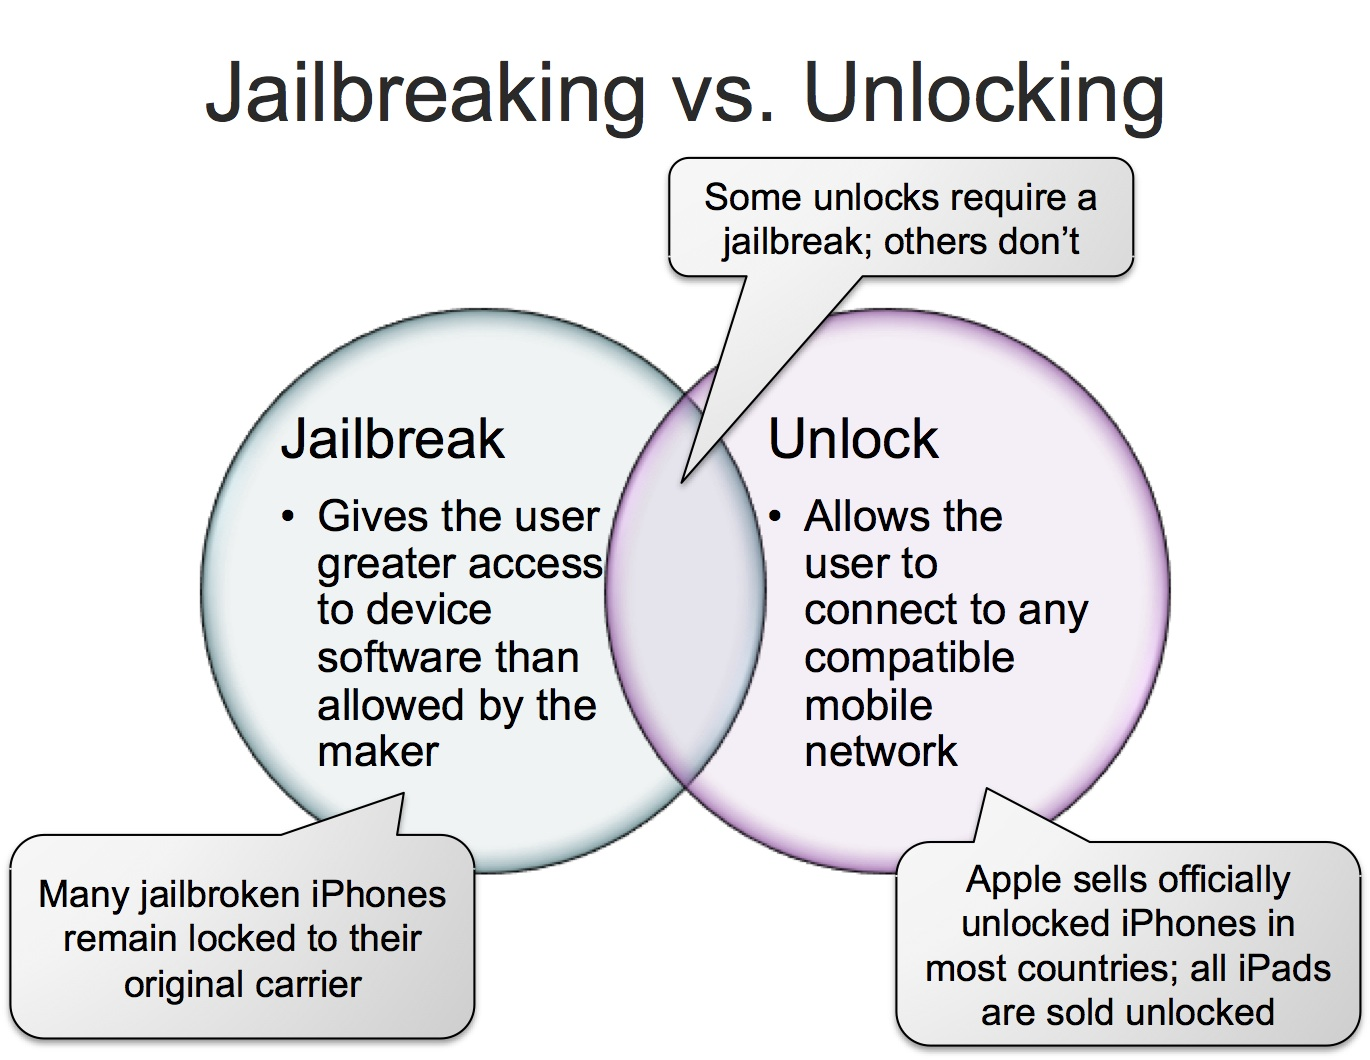 What's the Difference Between a Jailbroken and an Unlocked